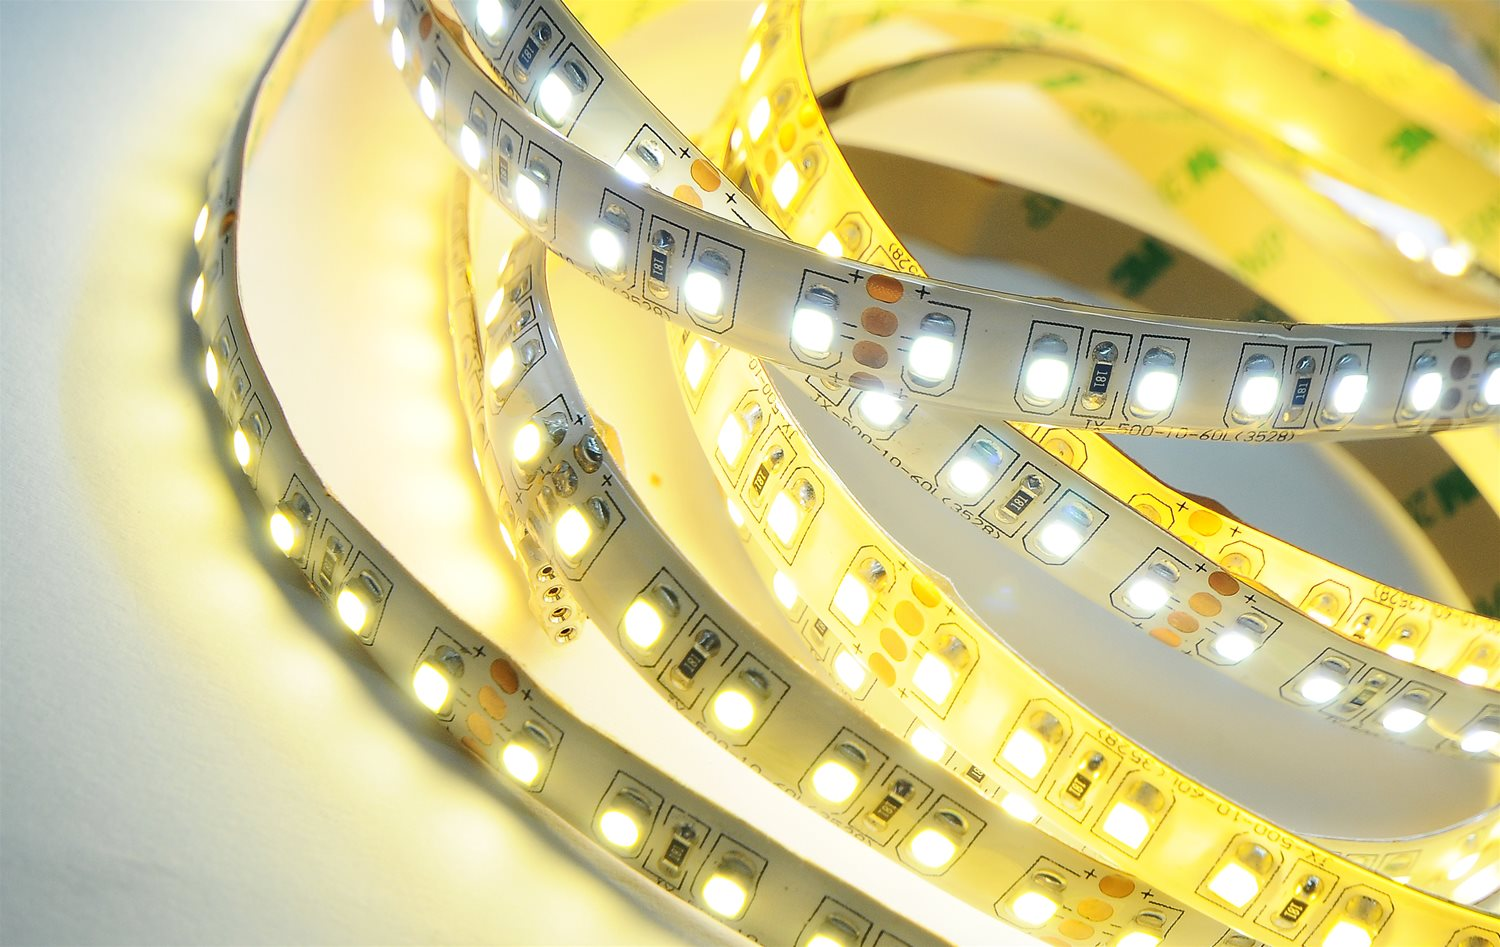 LED Tape Seamless 120 24V Range